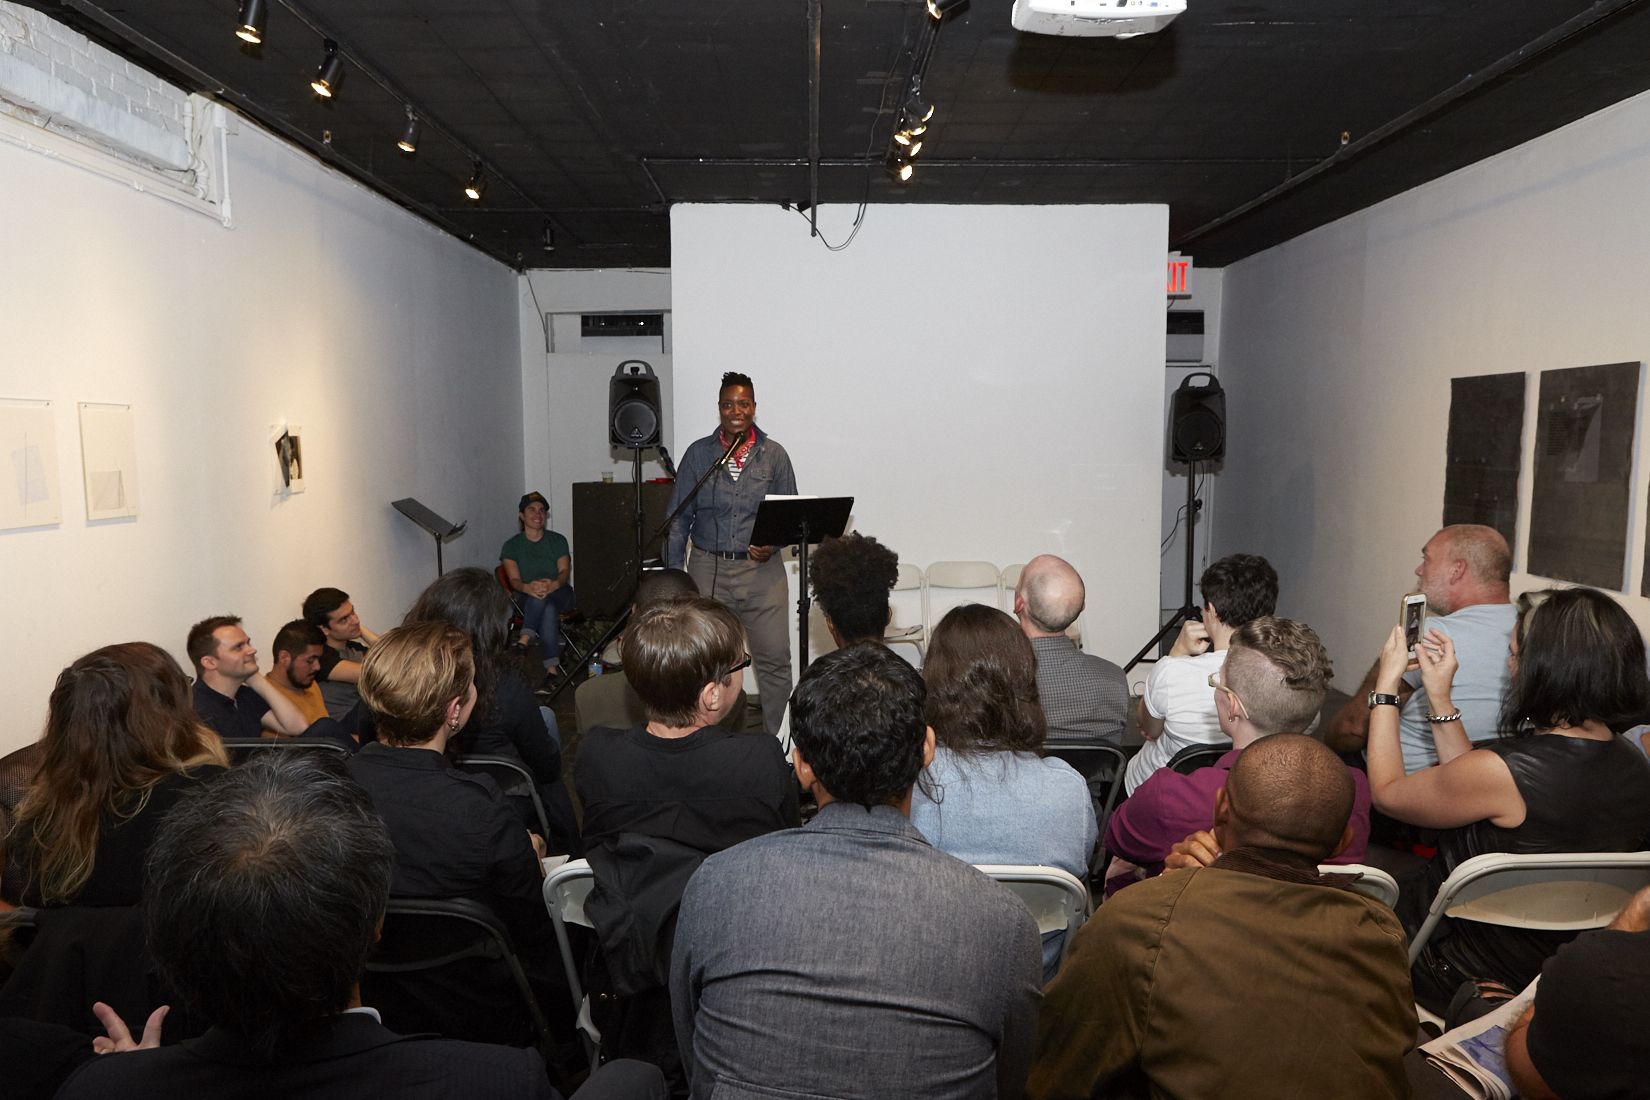 Heather Lynn Johnson Reading at Live Event of QAM 2016-2017 Annual Exhibition 01 (Photo by Eric McNatt)